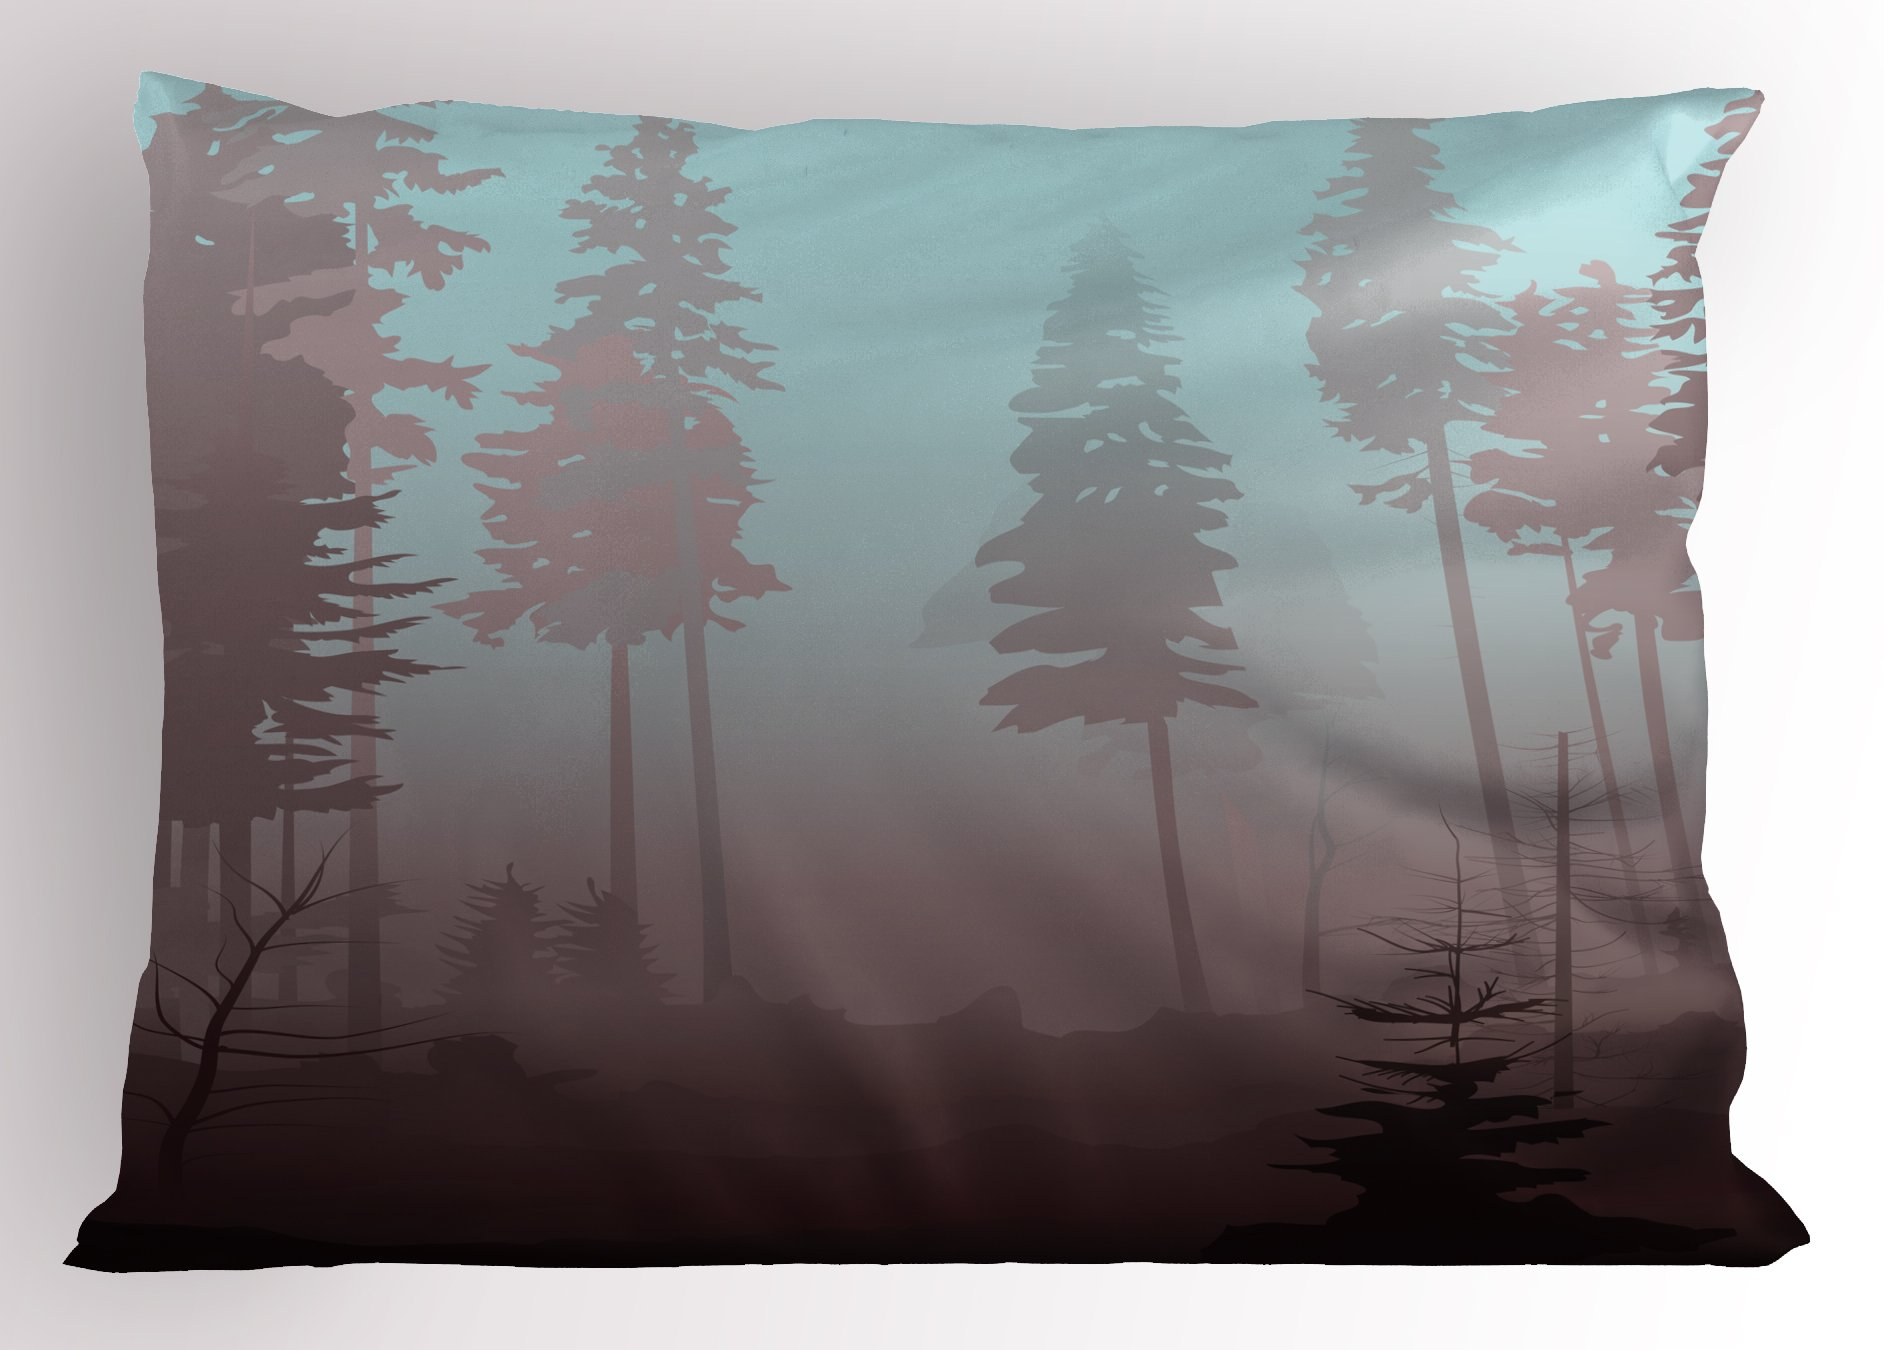 Ambesonne Forest Pillow Sham, Early Morning in Mysterious Woods with Heavy Fog Coniferous Trees, Decorative Standard King Size Printed Pillowcase, 36 X 20 inches, Pale Blue Dried Rose Maroon by Ambesonne (Image #1)